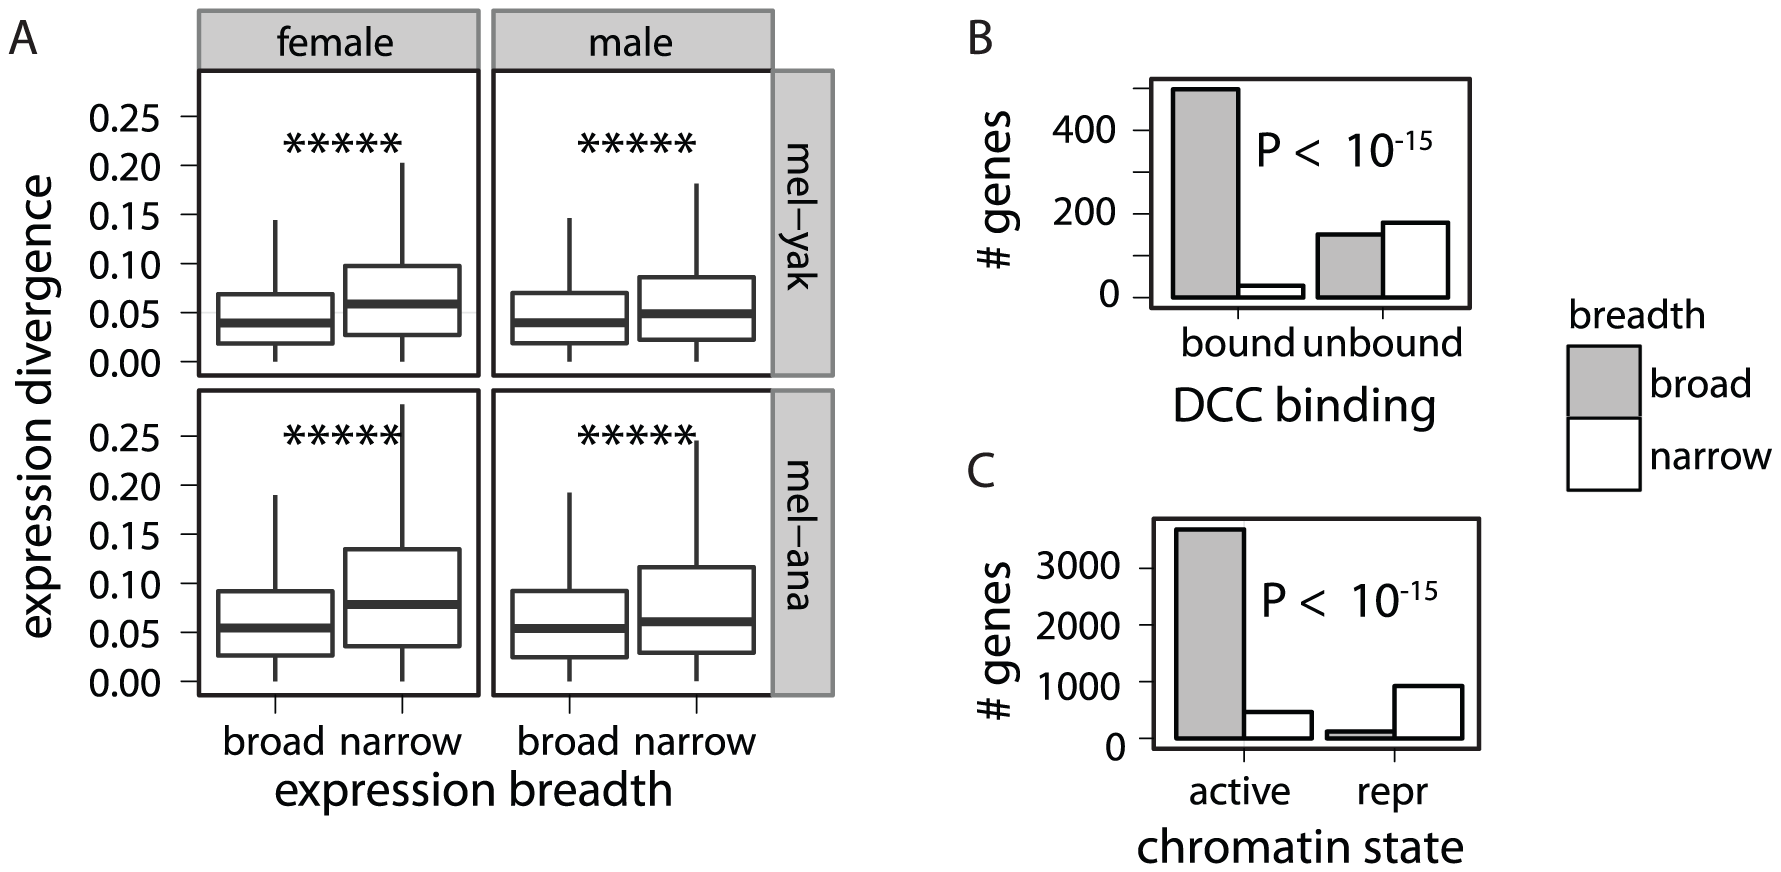 Association between expression breadth, DCC binding, chromatin state, and expression divergence.